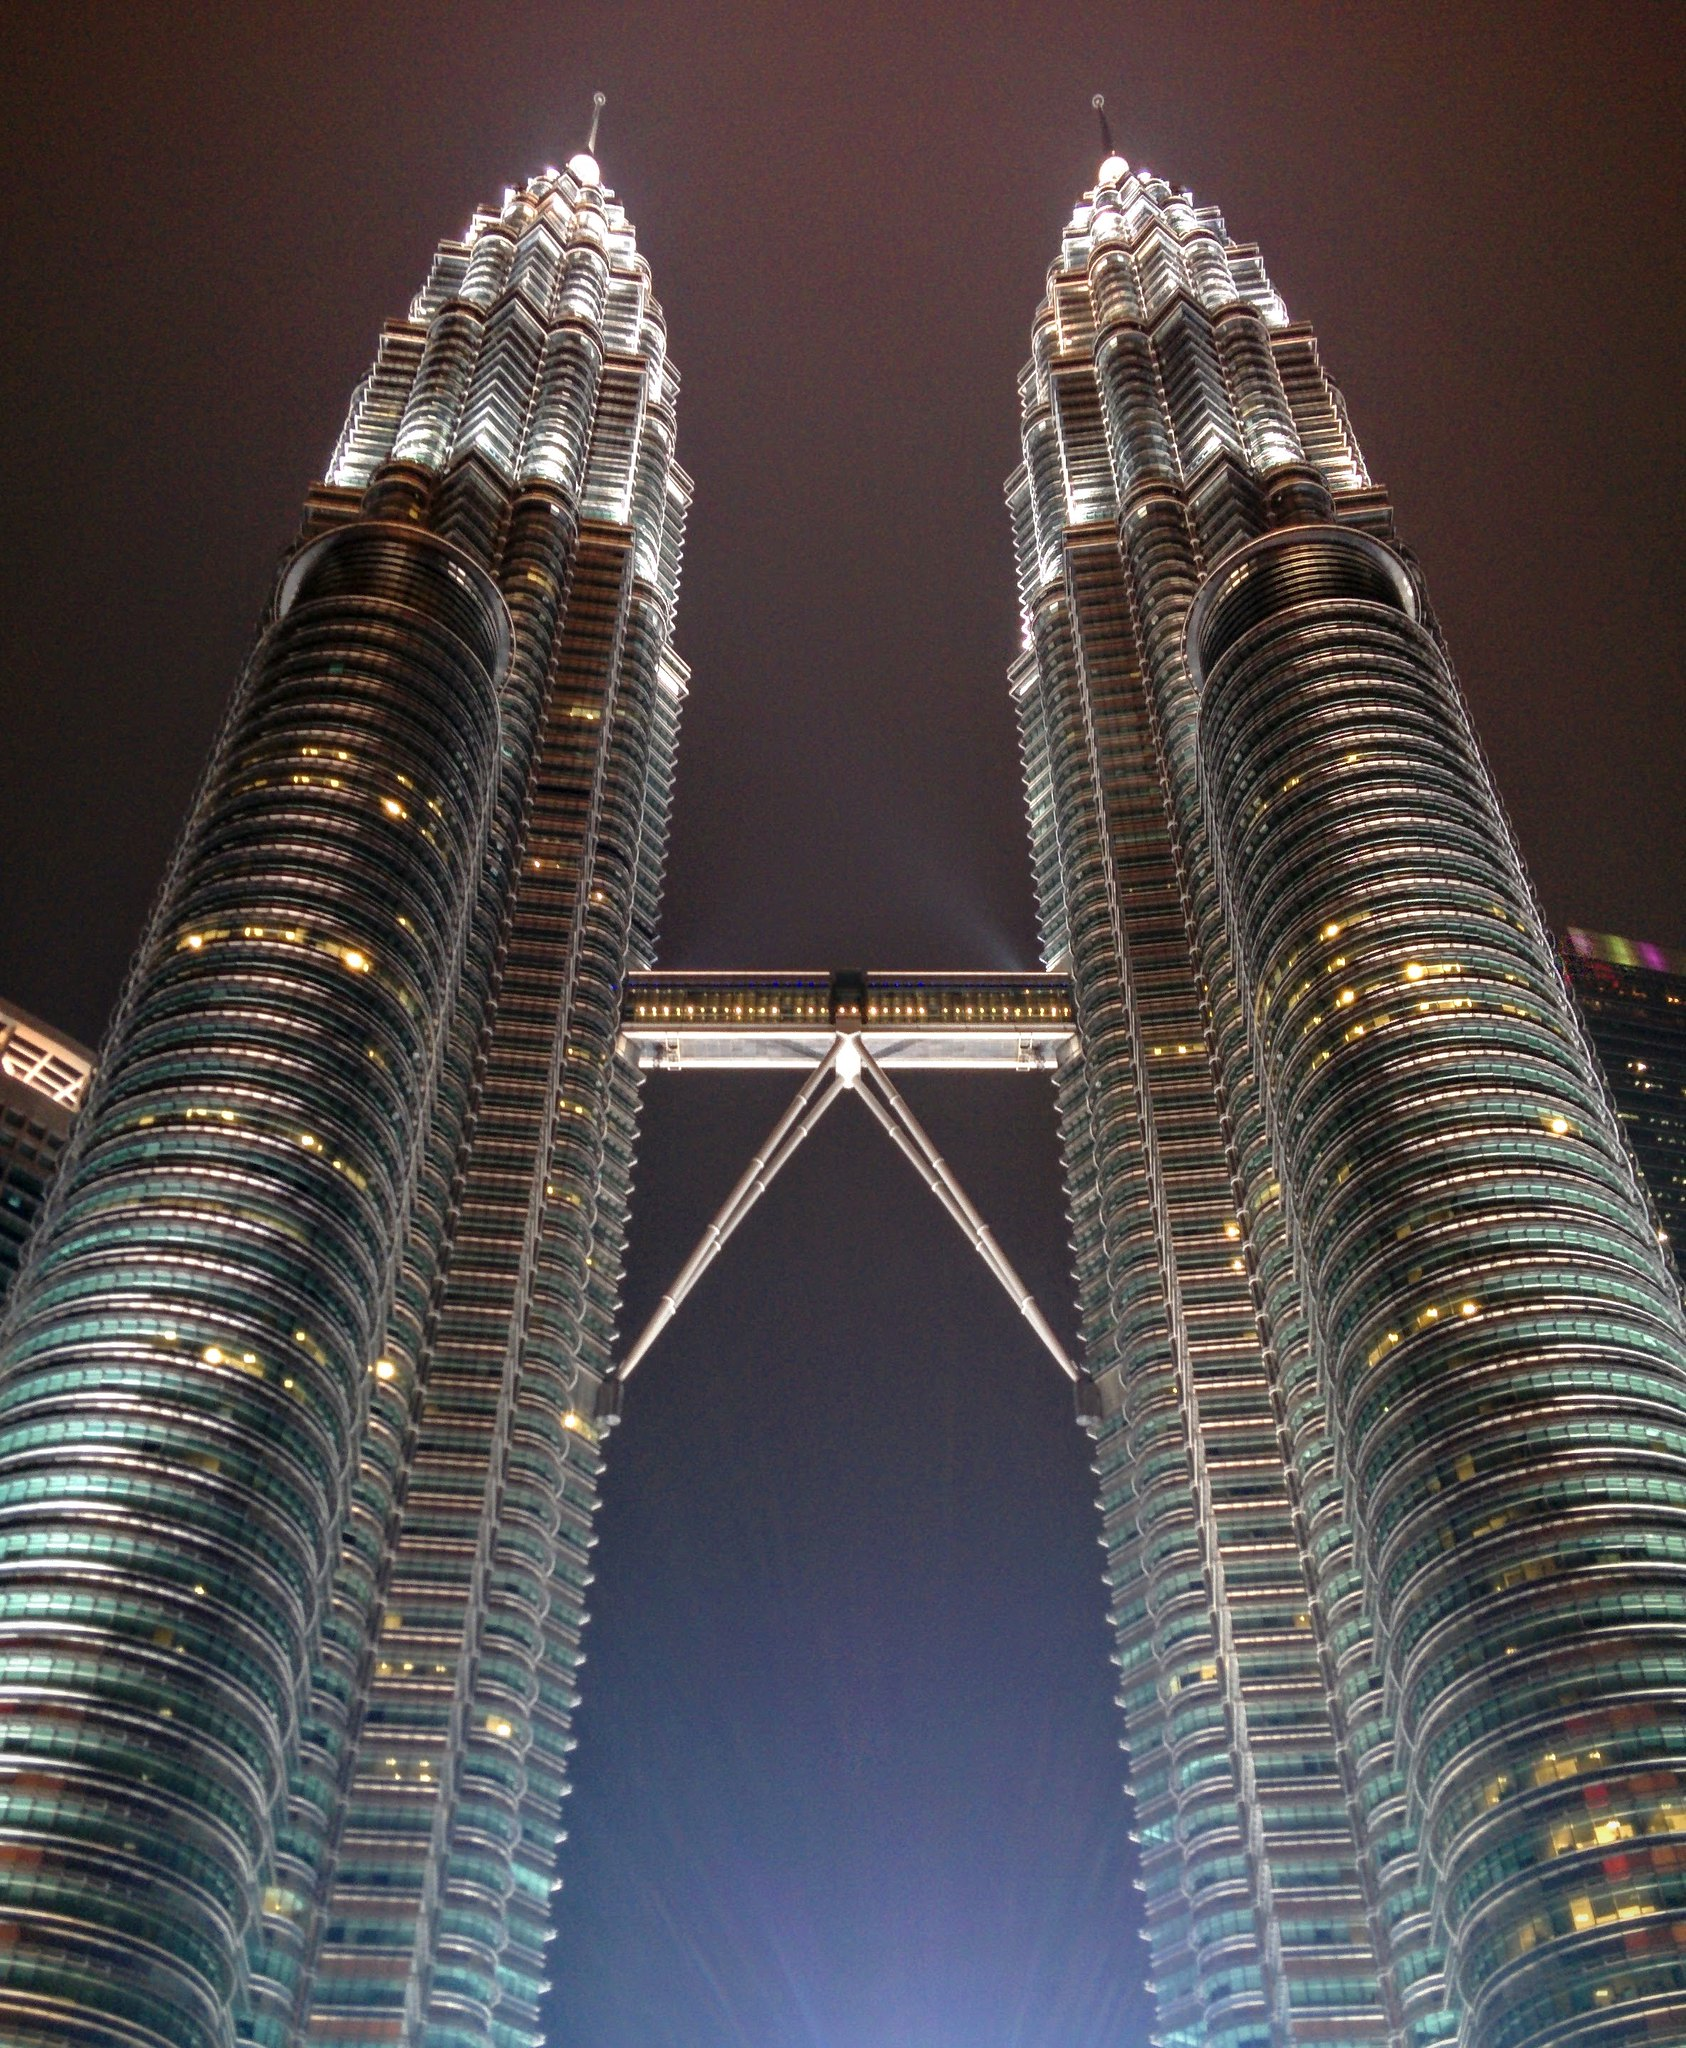 The Petronas towers lit up at night